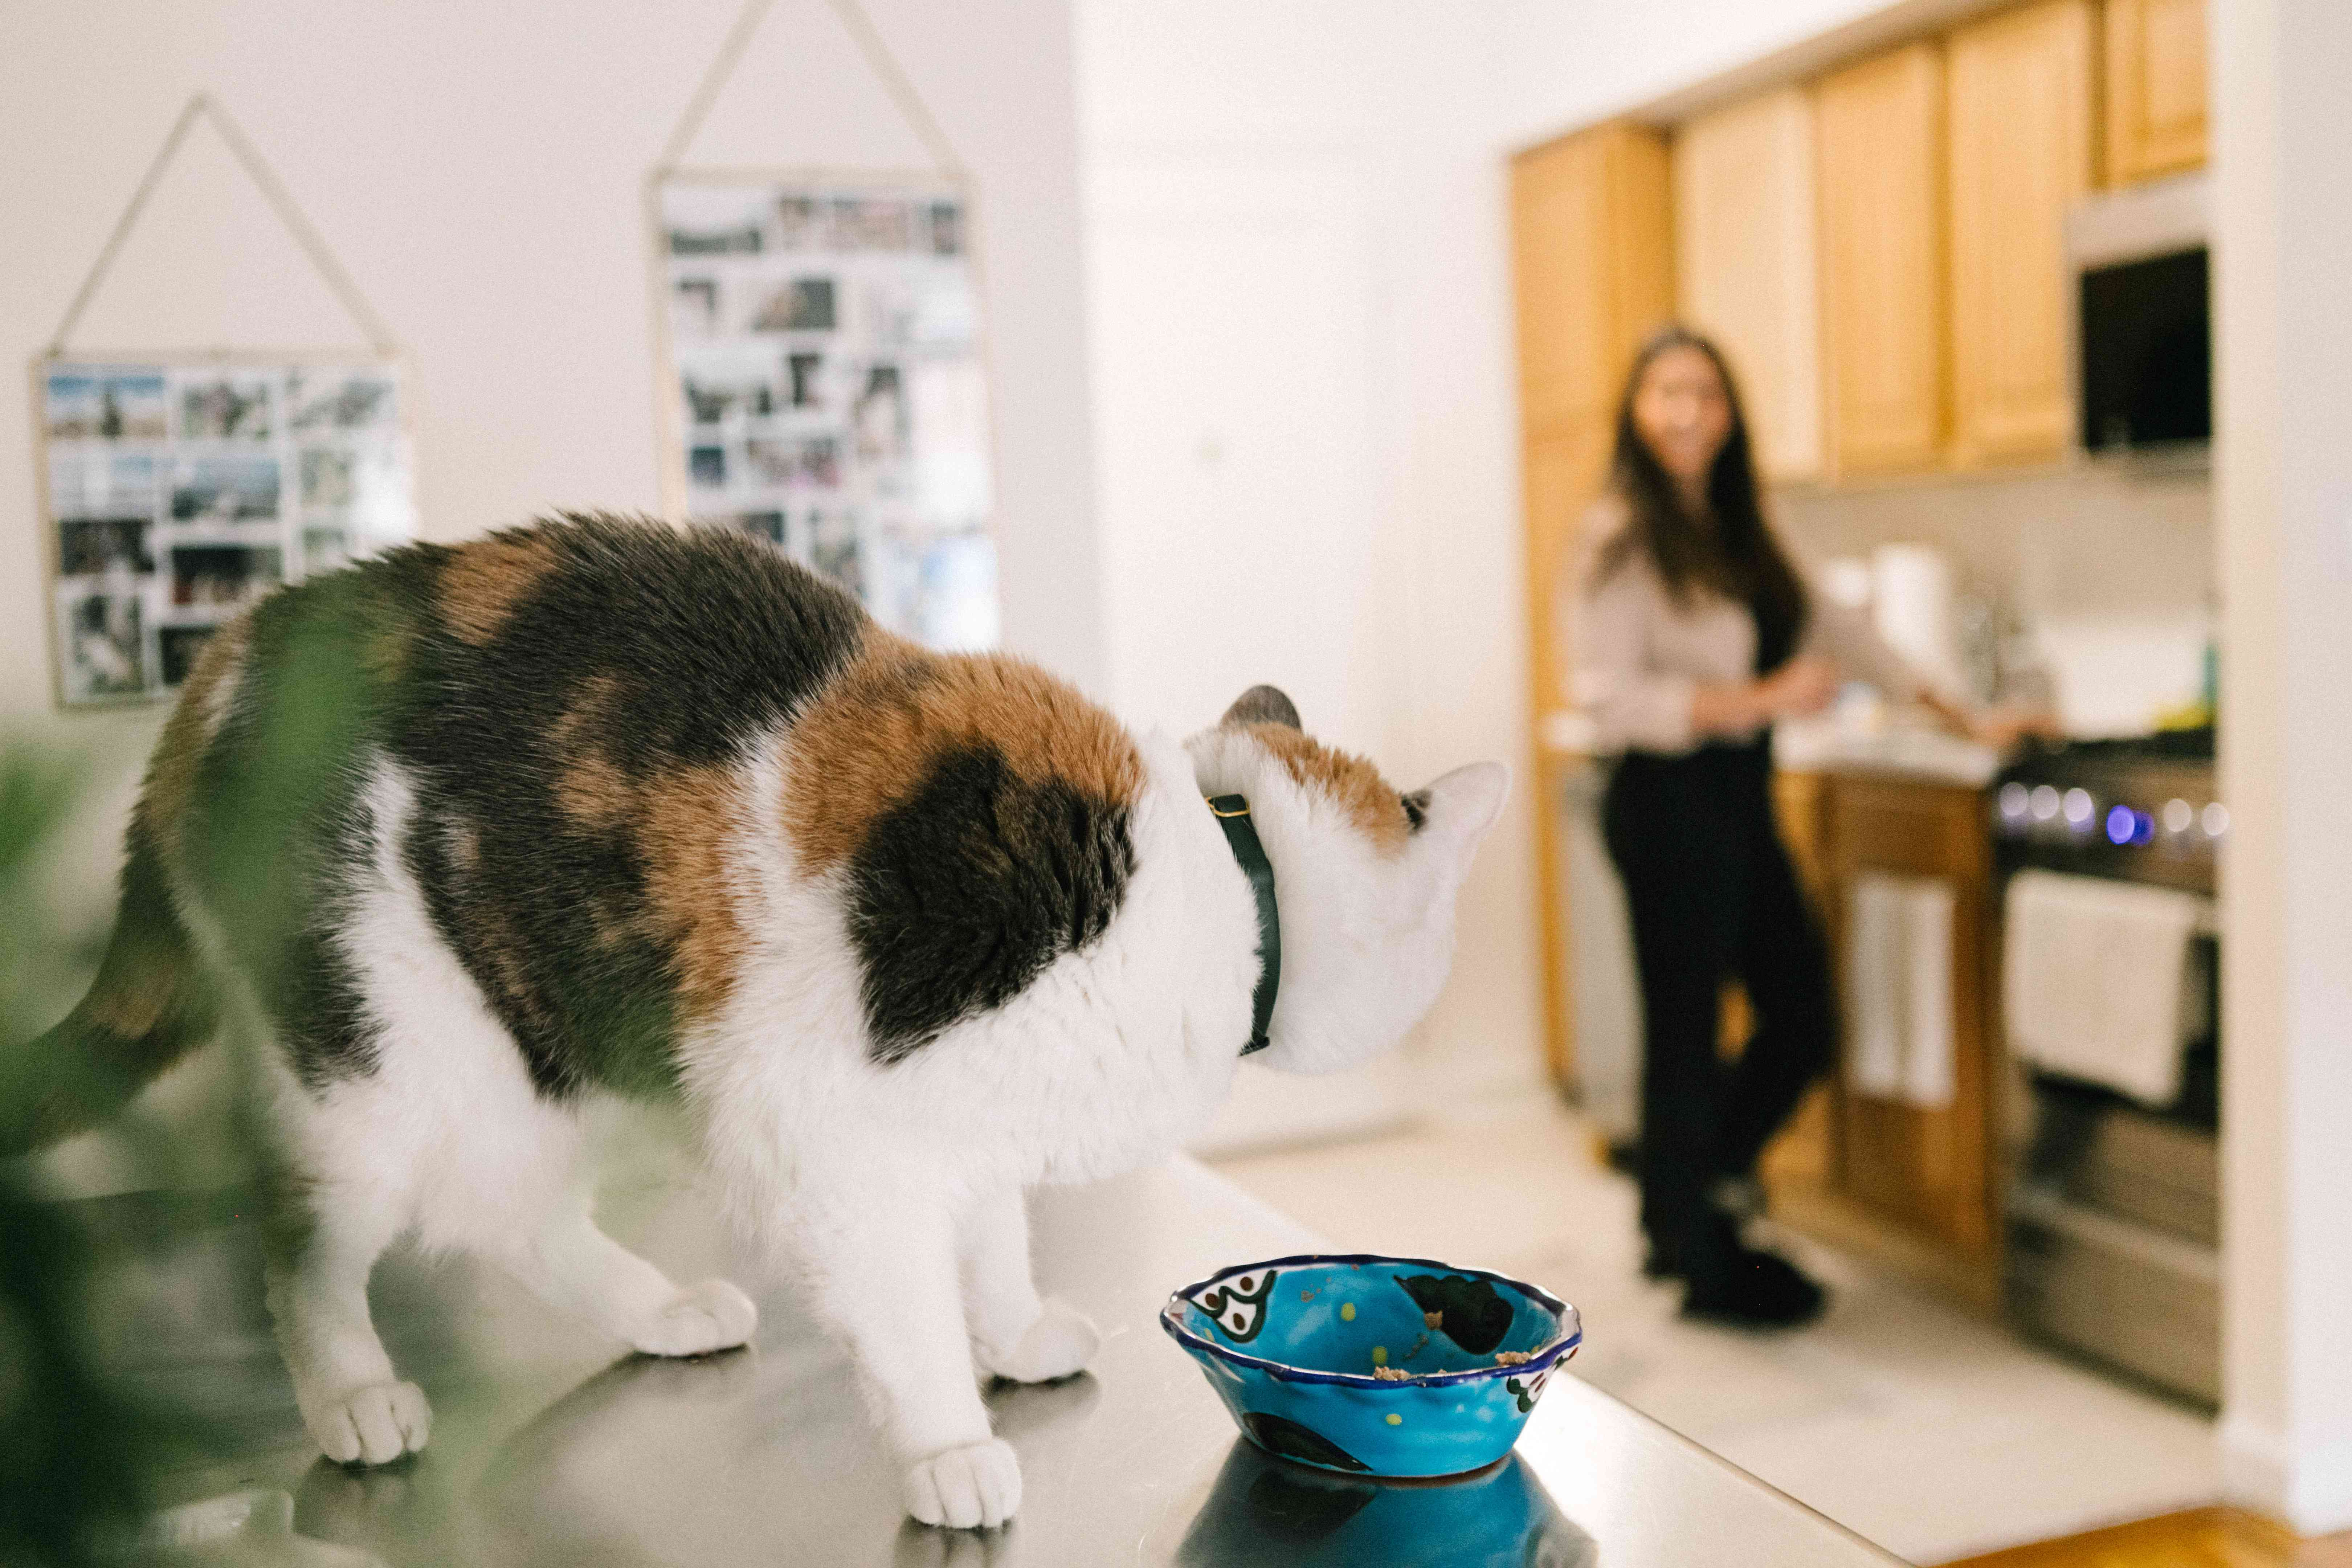 cat perches on table next to empty food bowl and stares at owner in distance